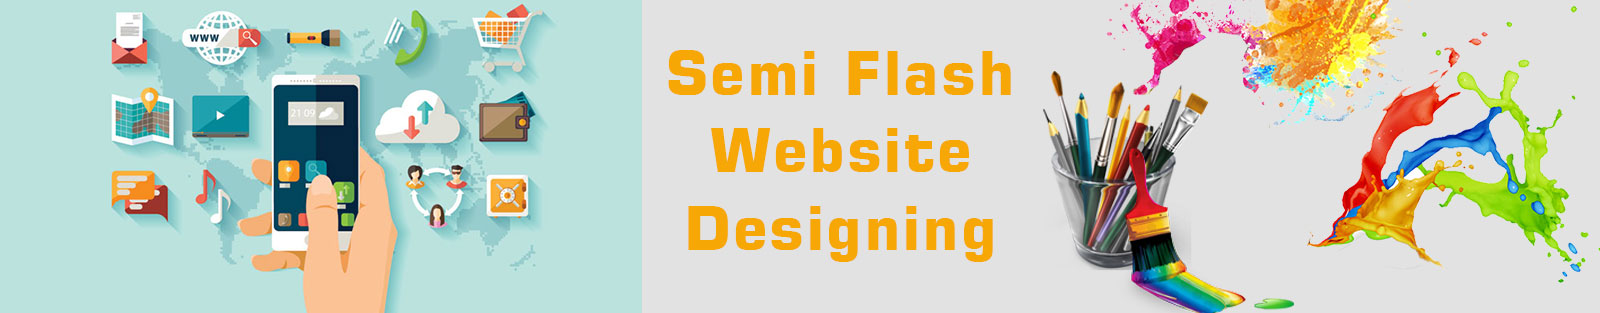 Semi Flash Website Designing